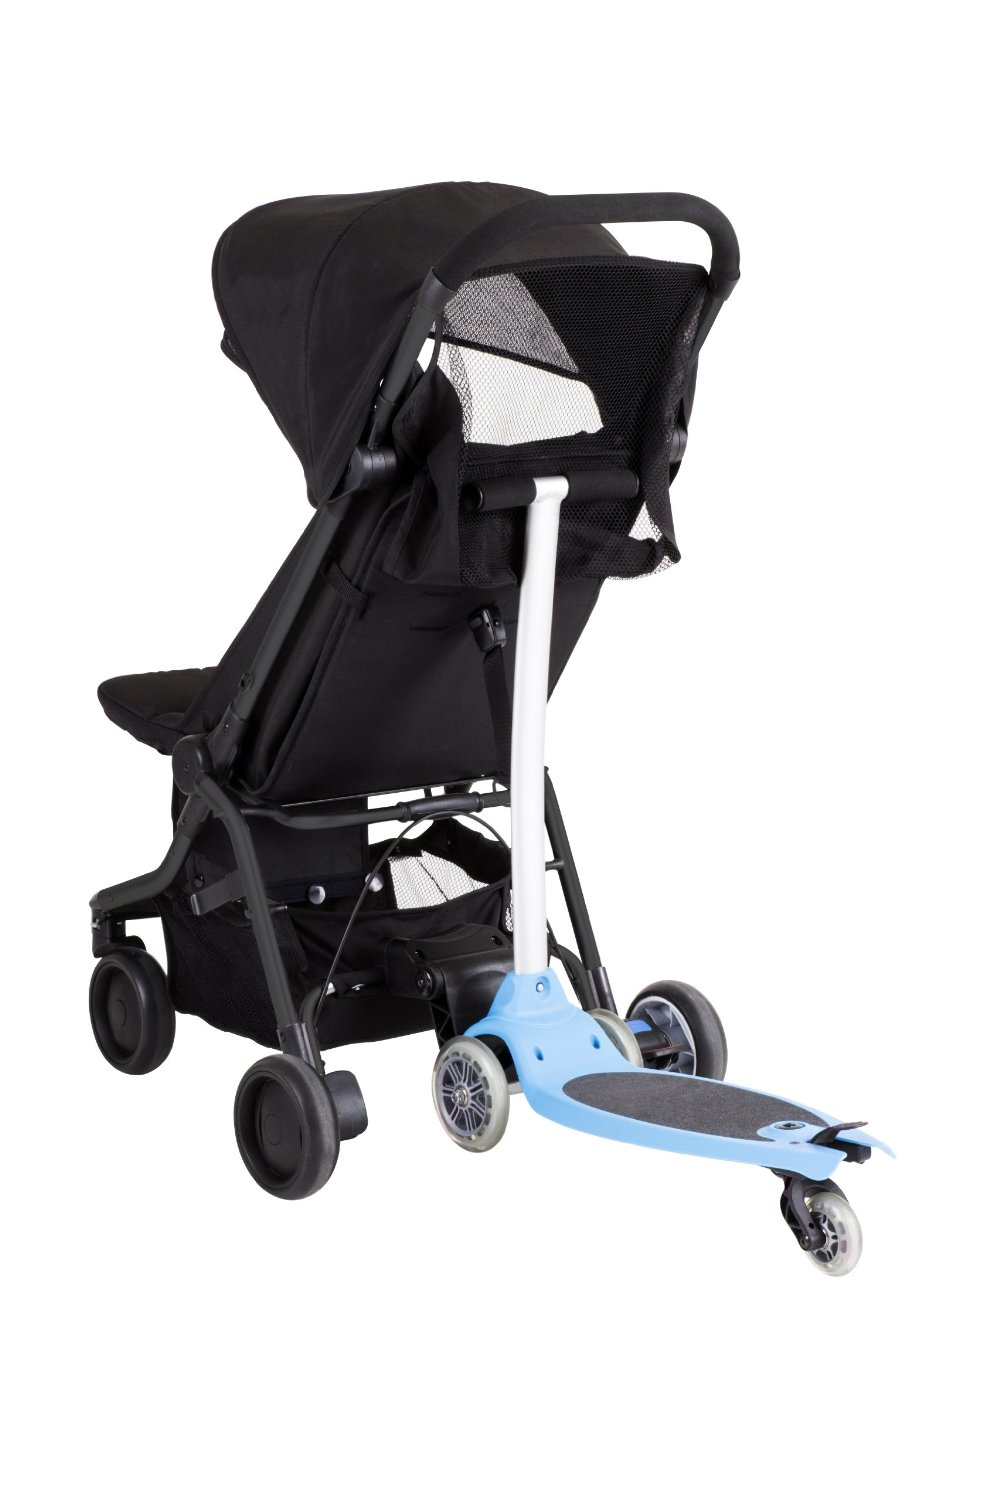 Mountain Buggy Nano best lightweight stroller - best lightweight stroller